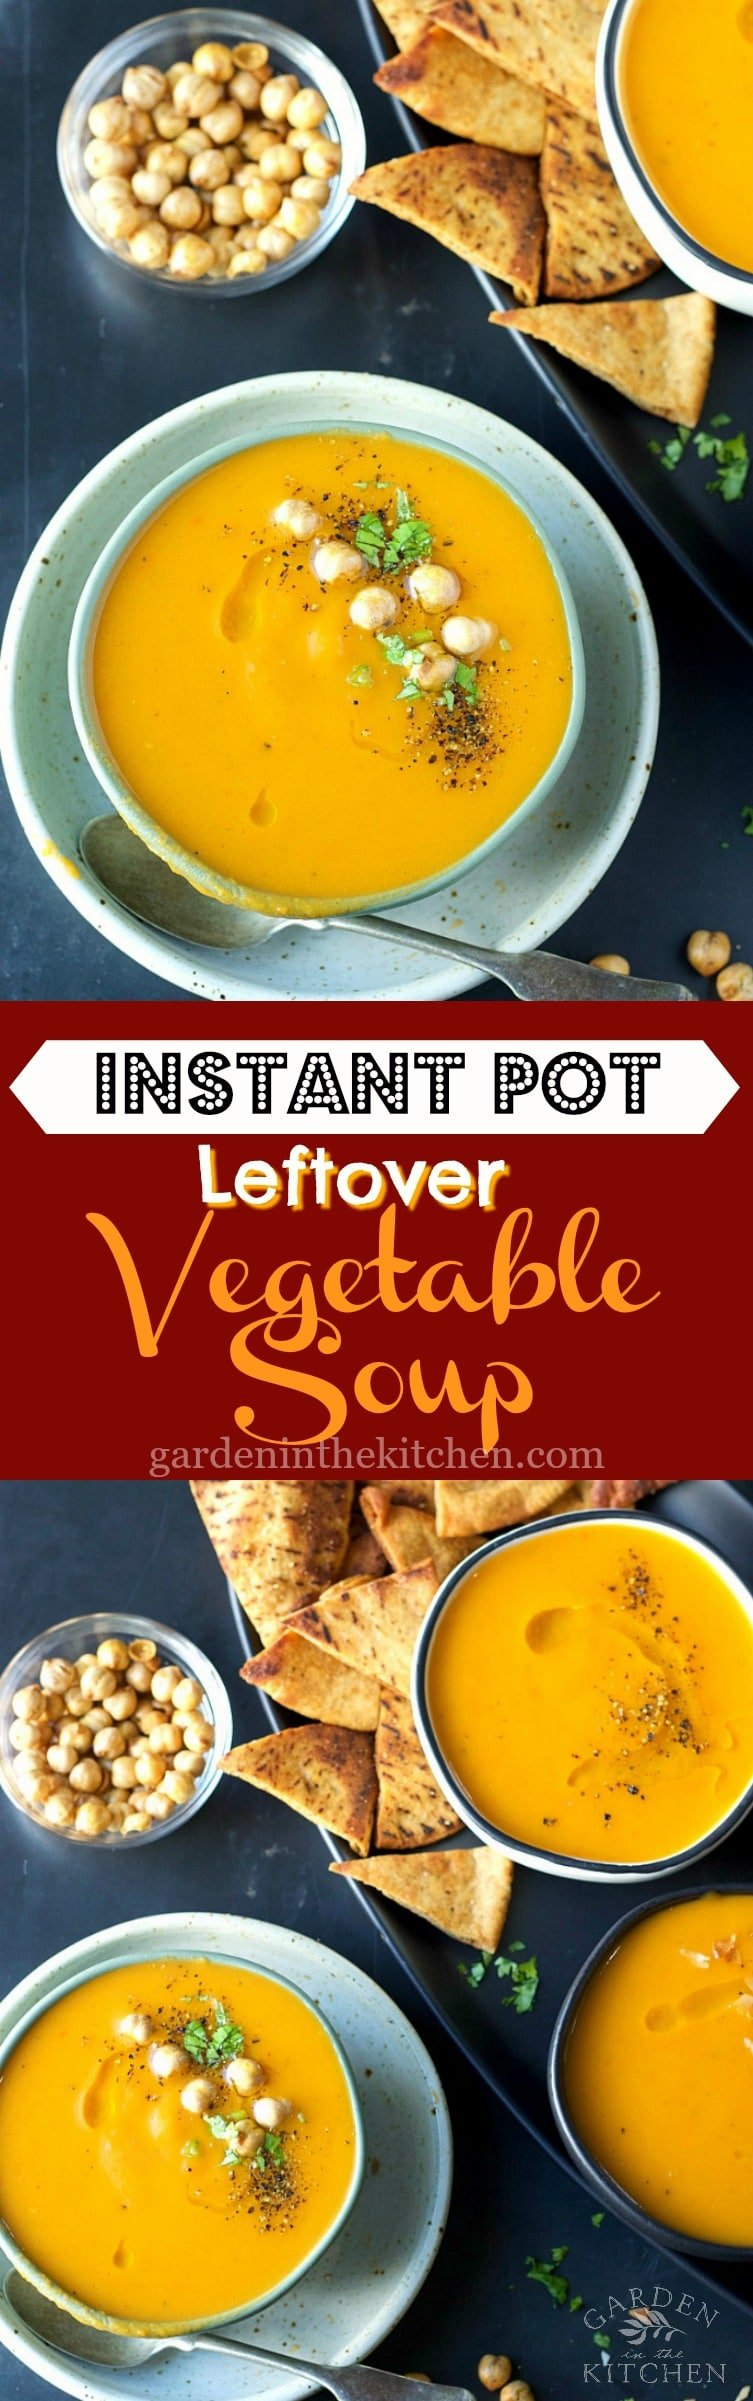 Instant Pot Leftover Vegetable Soup | Garden in the Kitchen